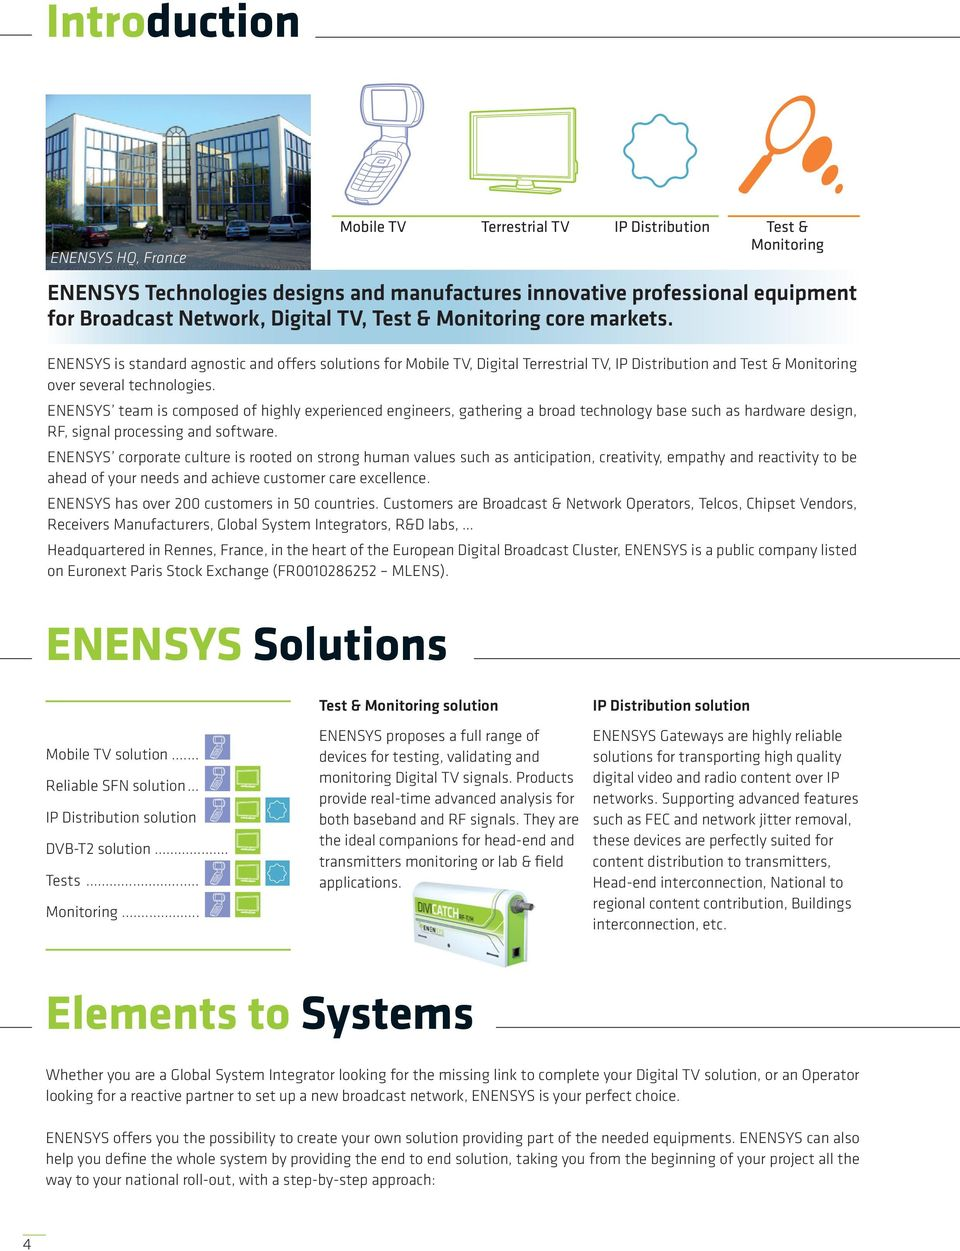 ENENSYS team is composed of highly experienced engineers, gathering a broad technology base such as hardware design, RF, signal processing and software.